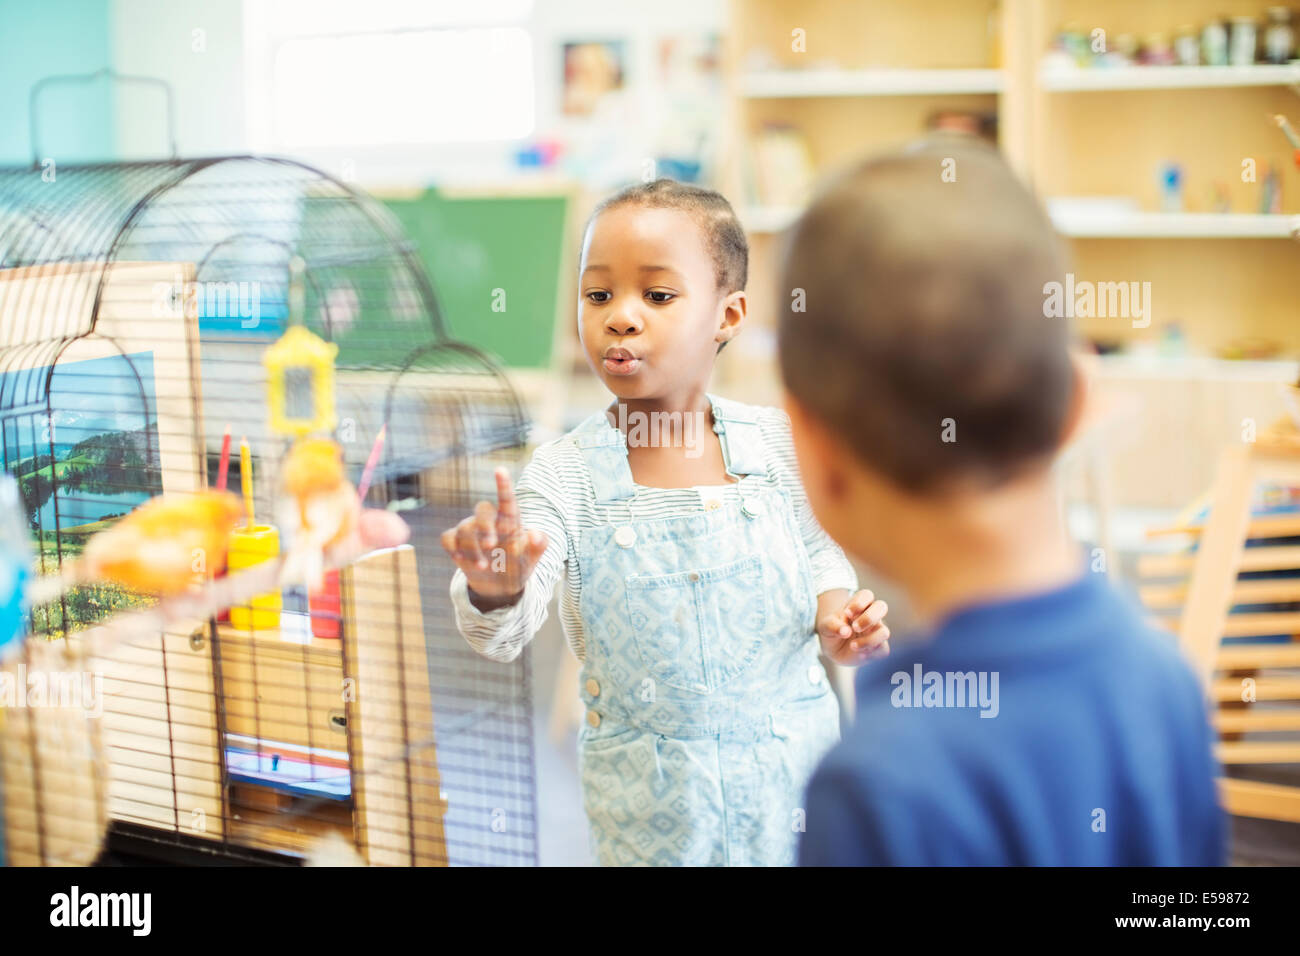 Students examining birdcage in classroom - Stock Image